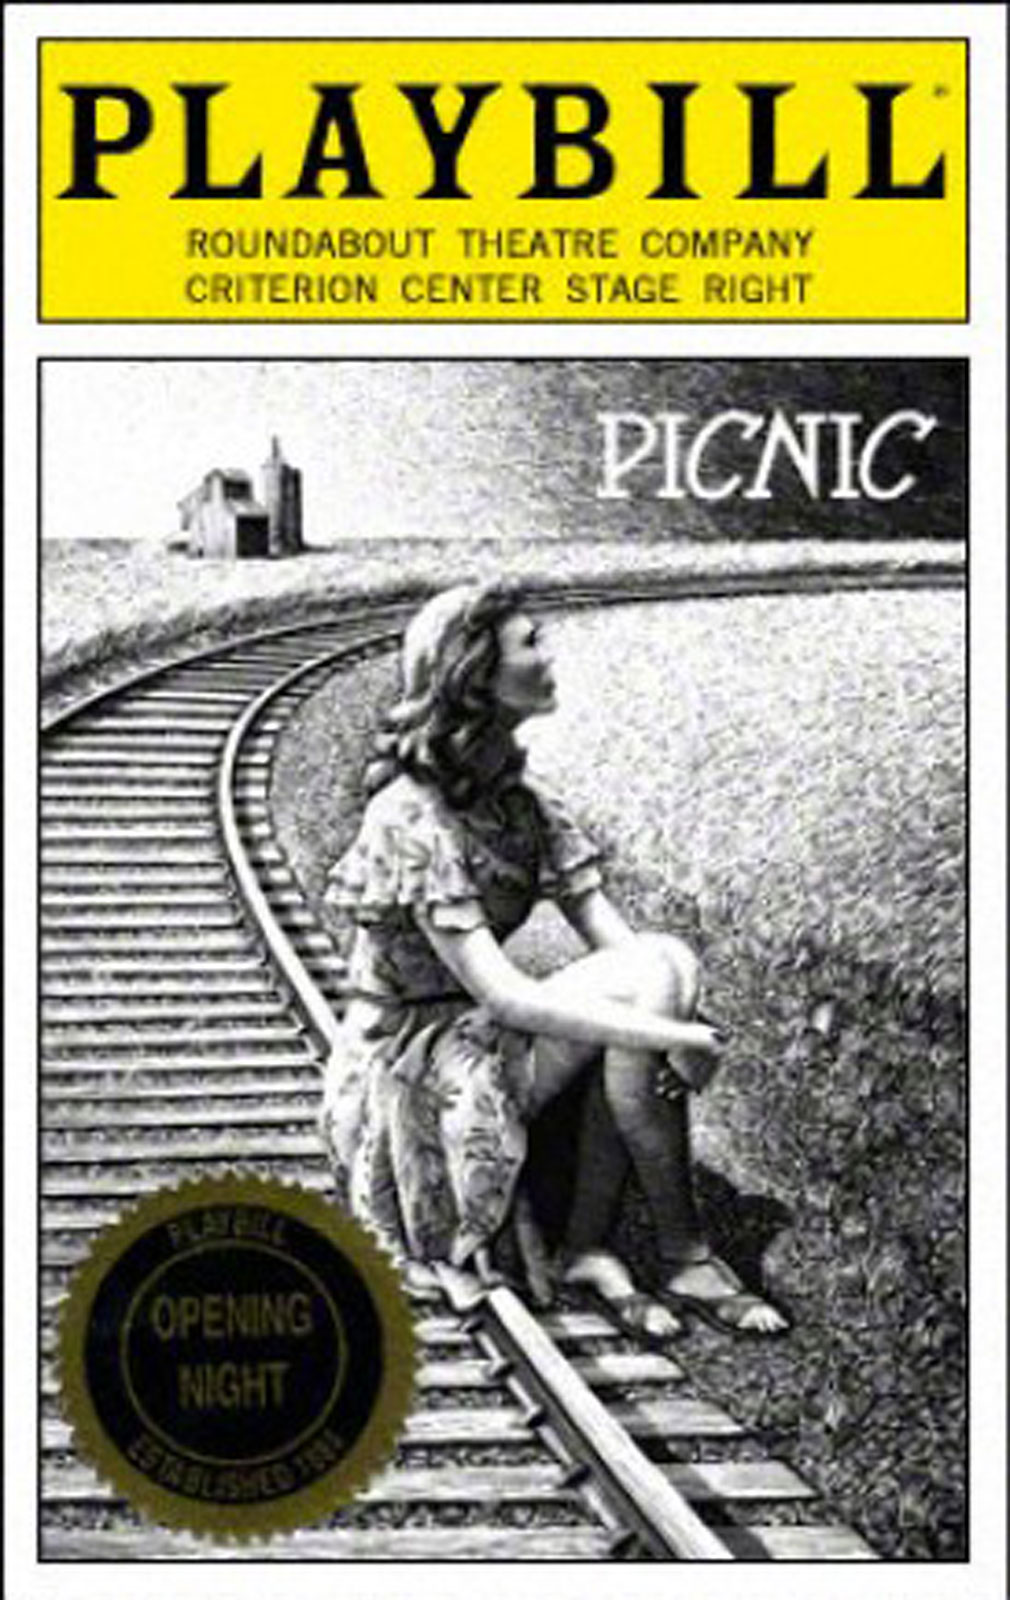 Picnic Playbill from Opening Night, showing woman sitting on railroad tracks in the country with house in the background. Also displays Roundabout Theatre Company / Criterion Center Stage Right.